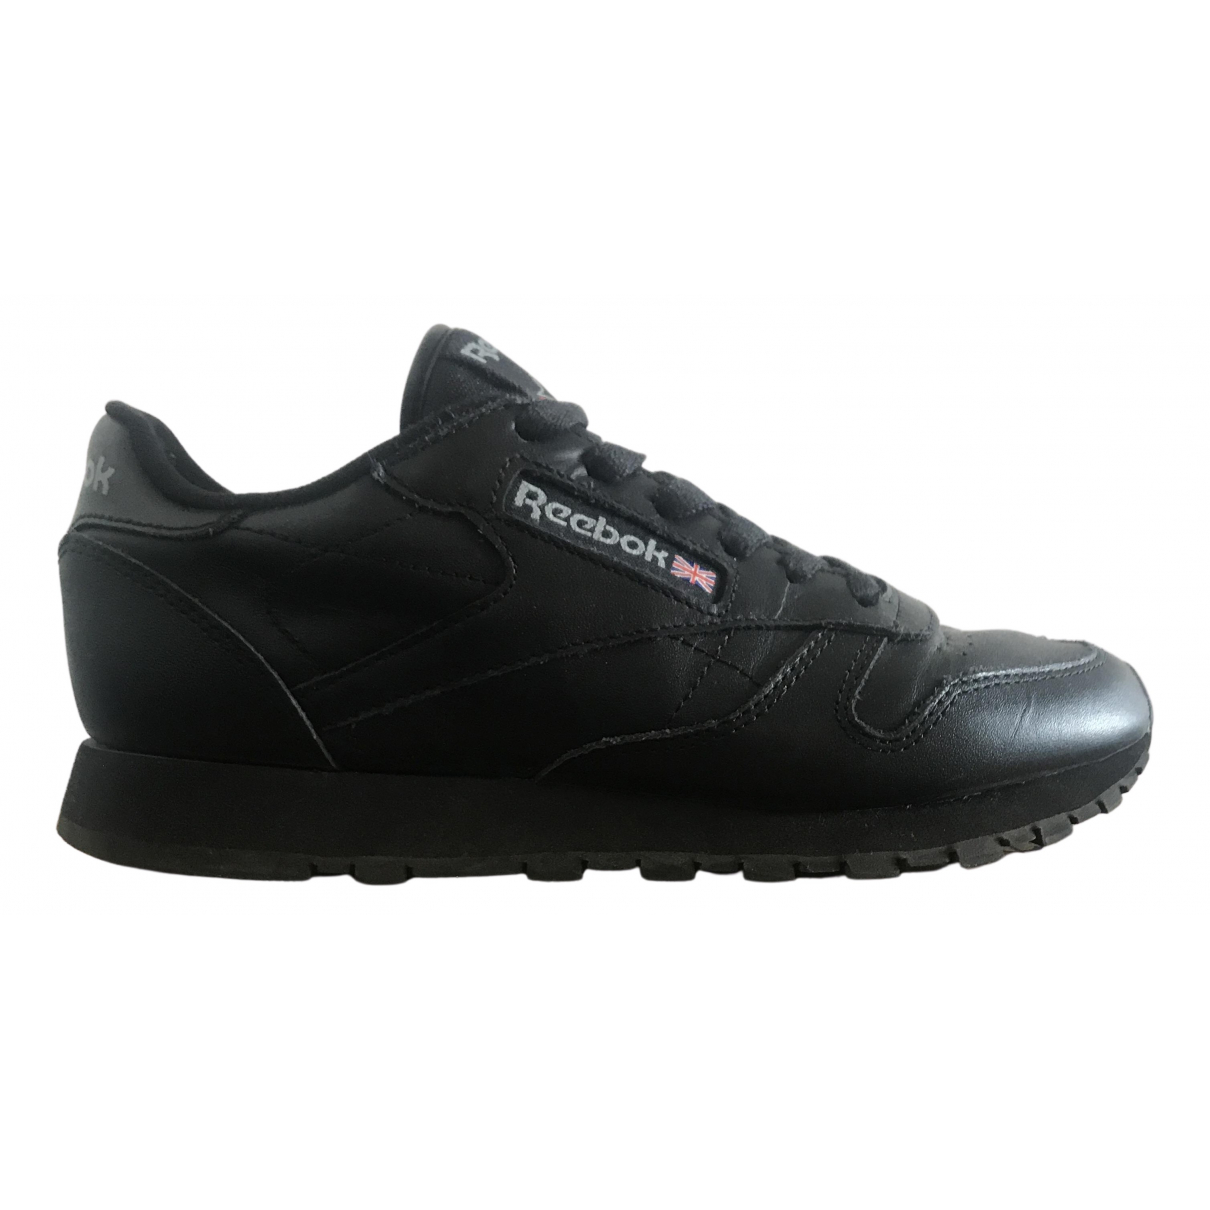 Reebok N Black Leather Trainers for Women 6.5 US